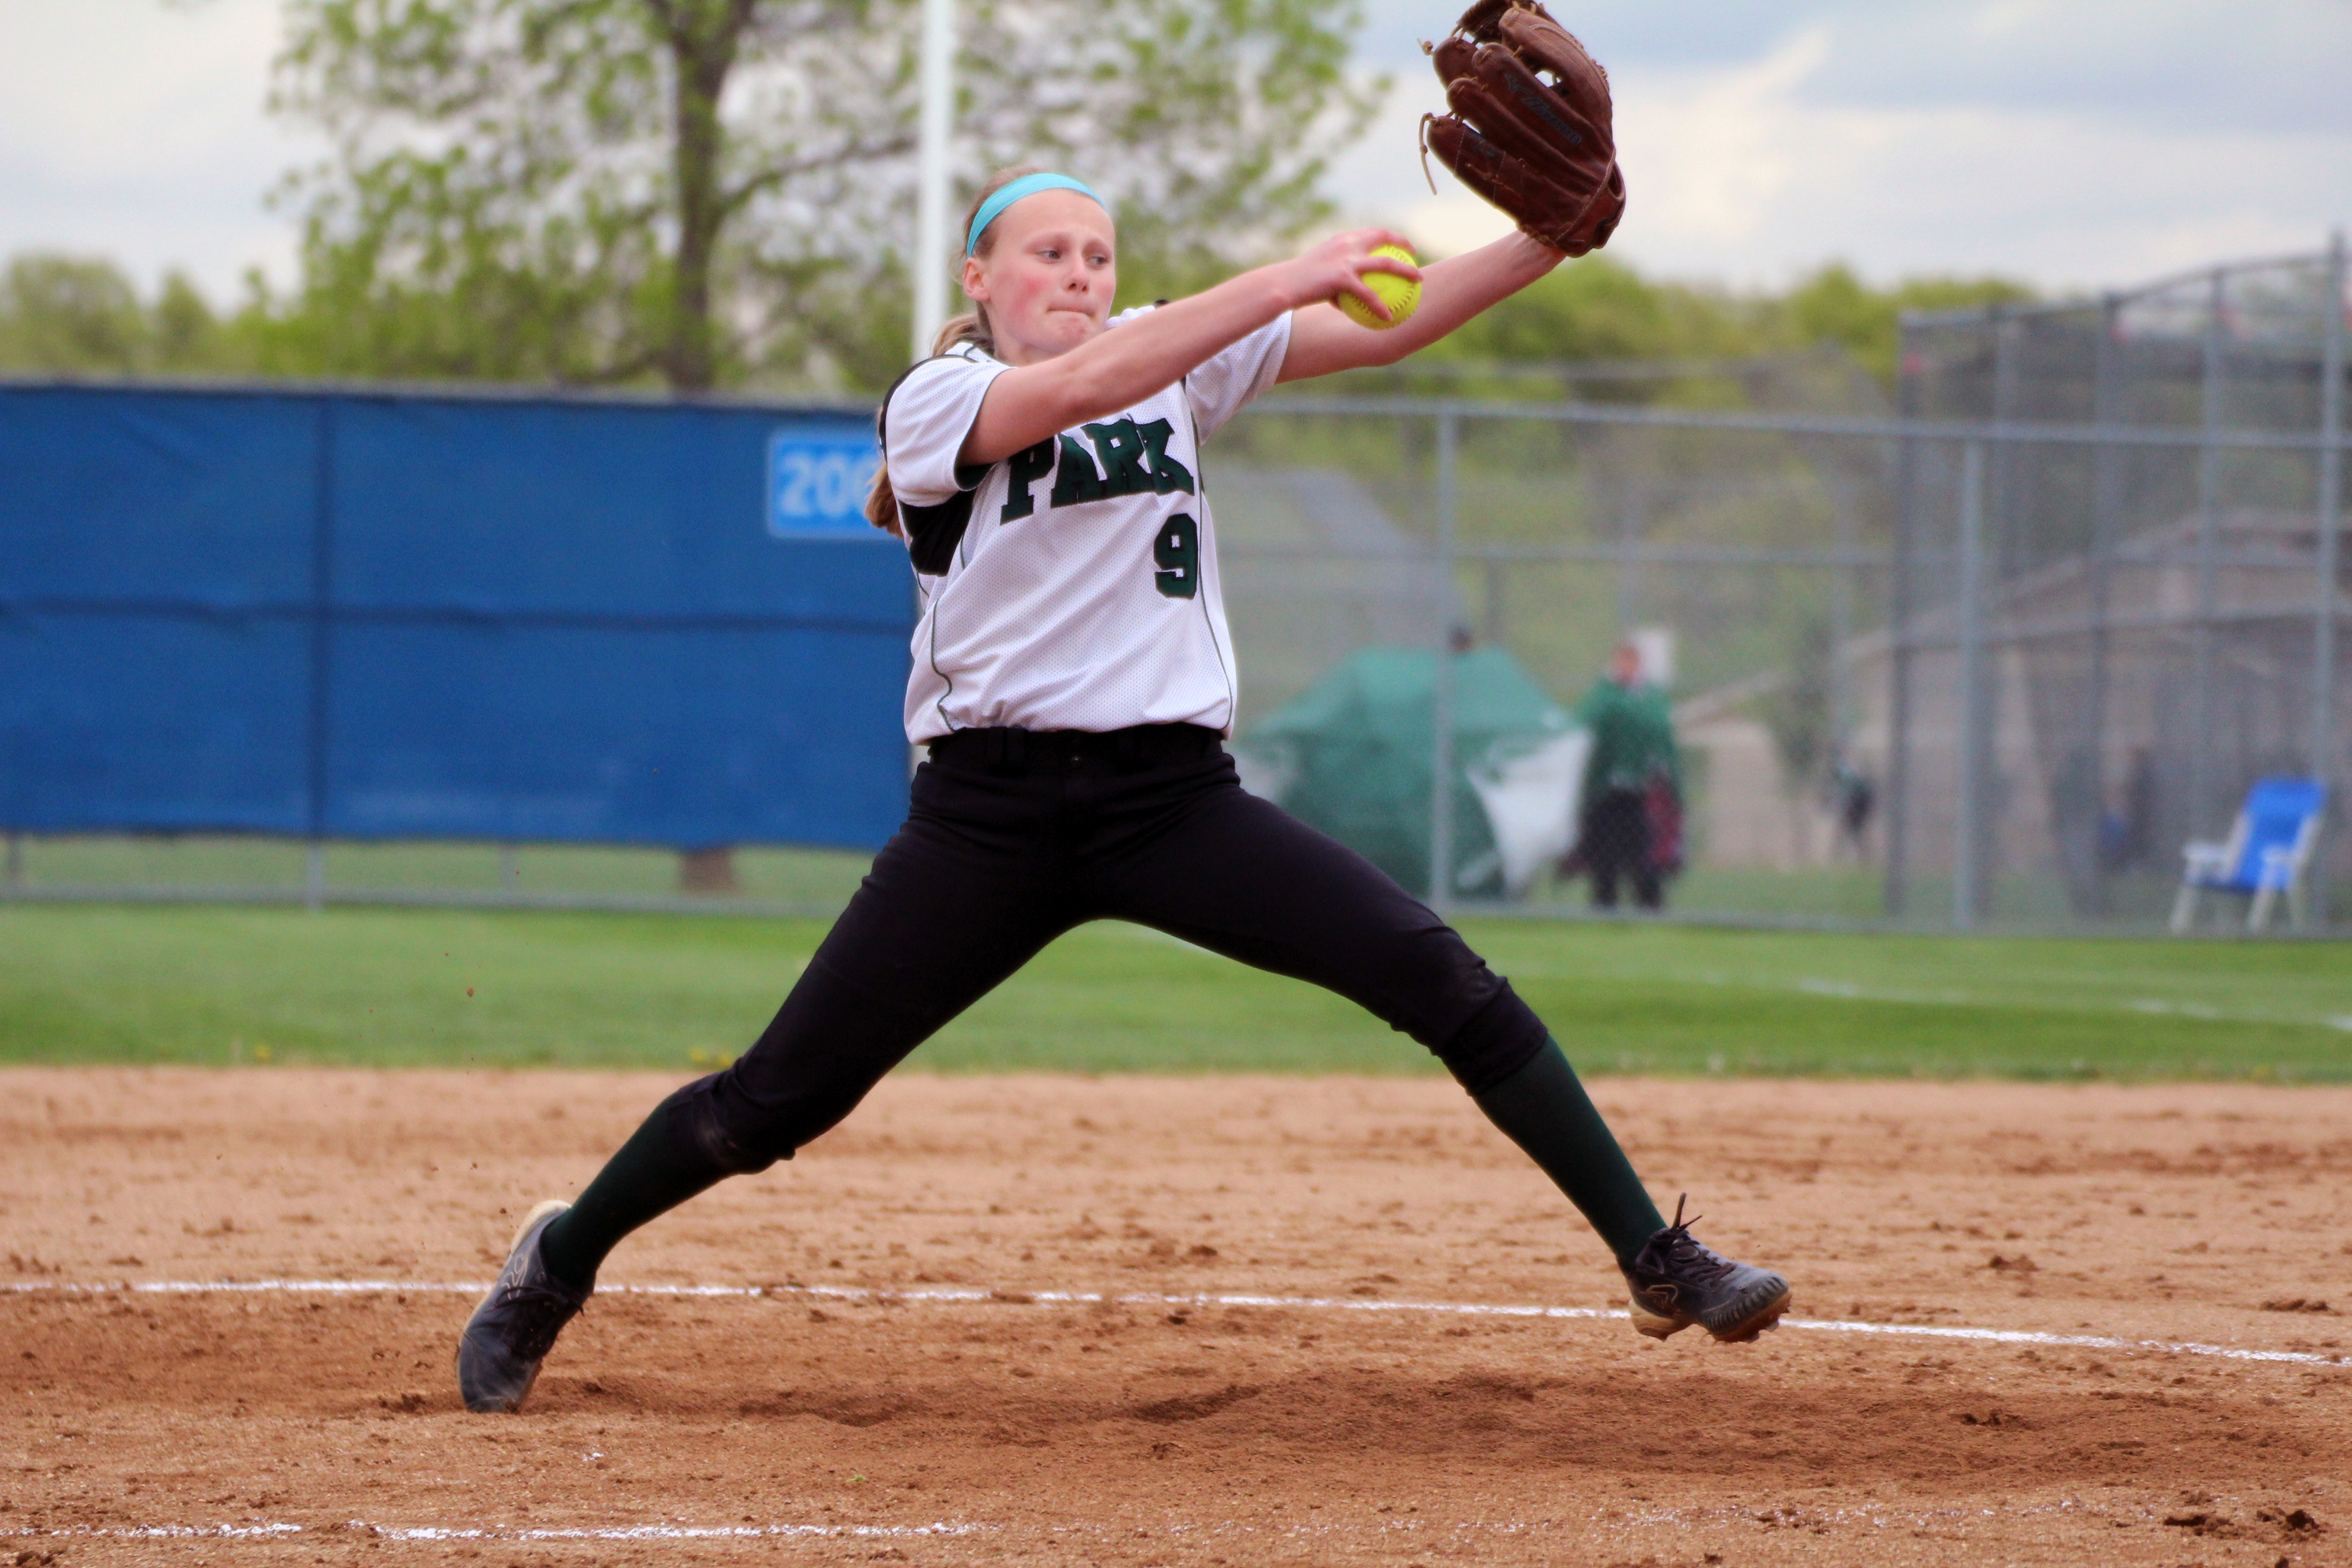 Freshman Bryanna Olson allowed one run in the final four innings to clinch a victory for top-ranked Park of Cottage Grove. Photo by Trevor Squire